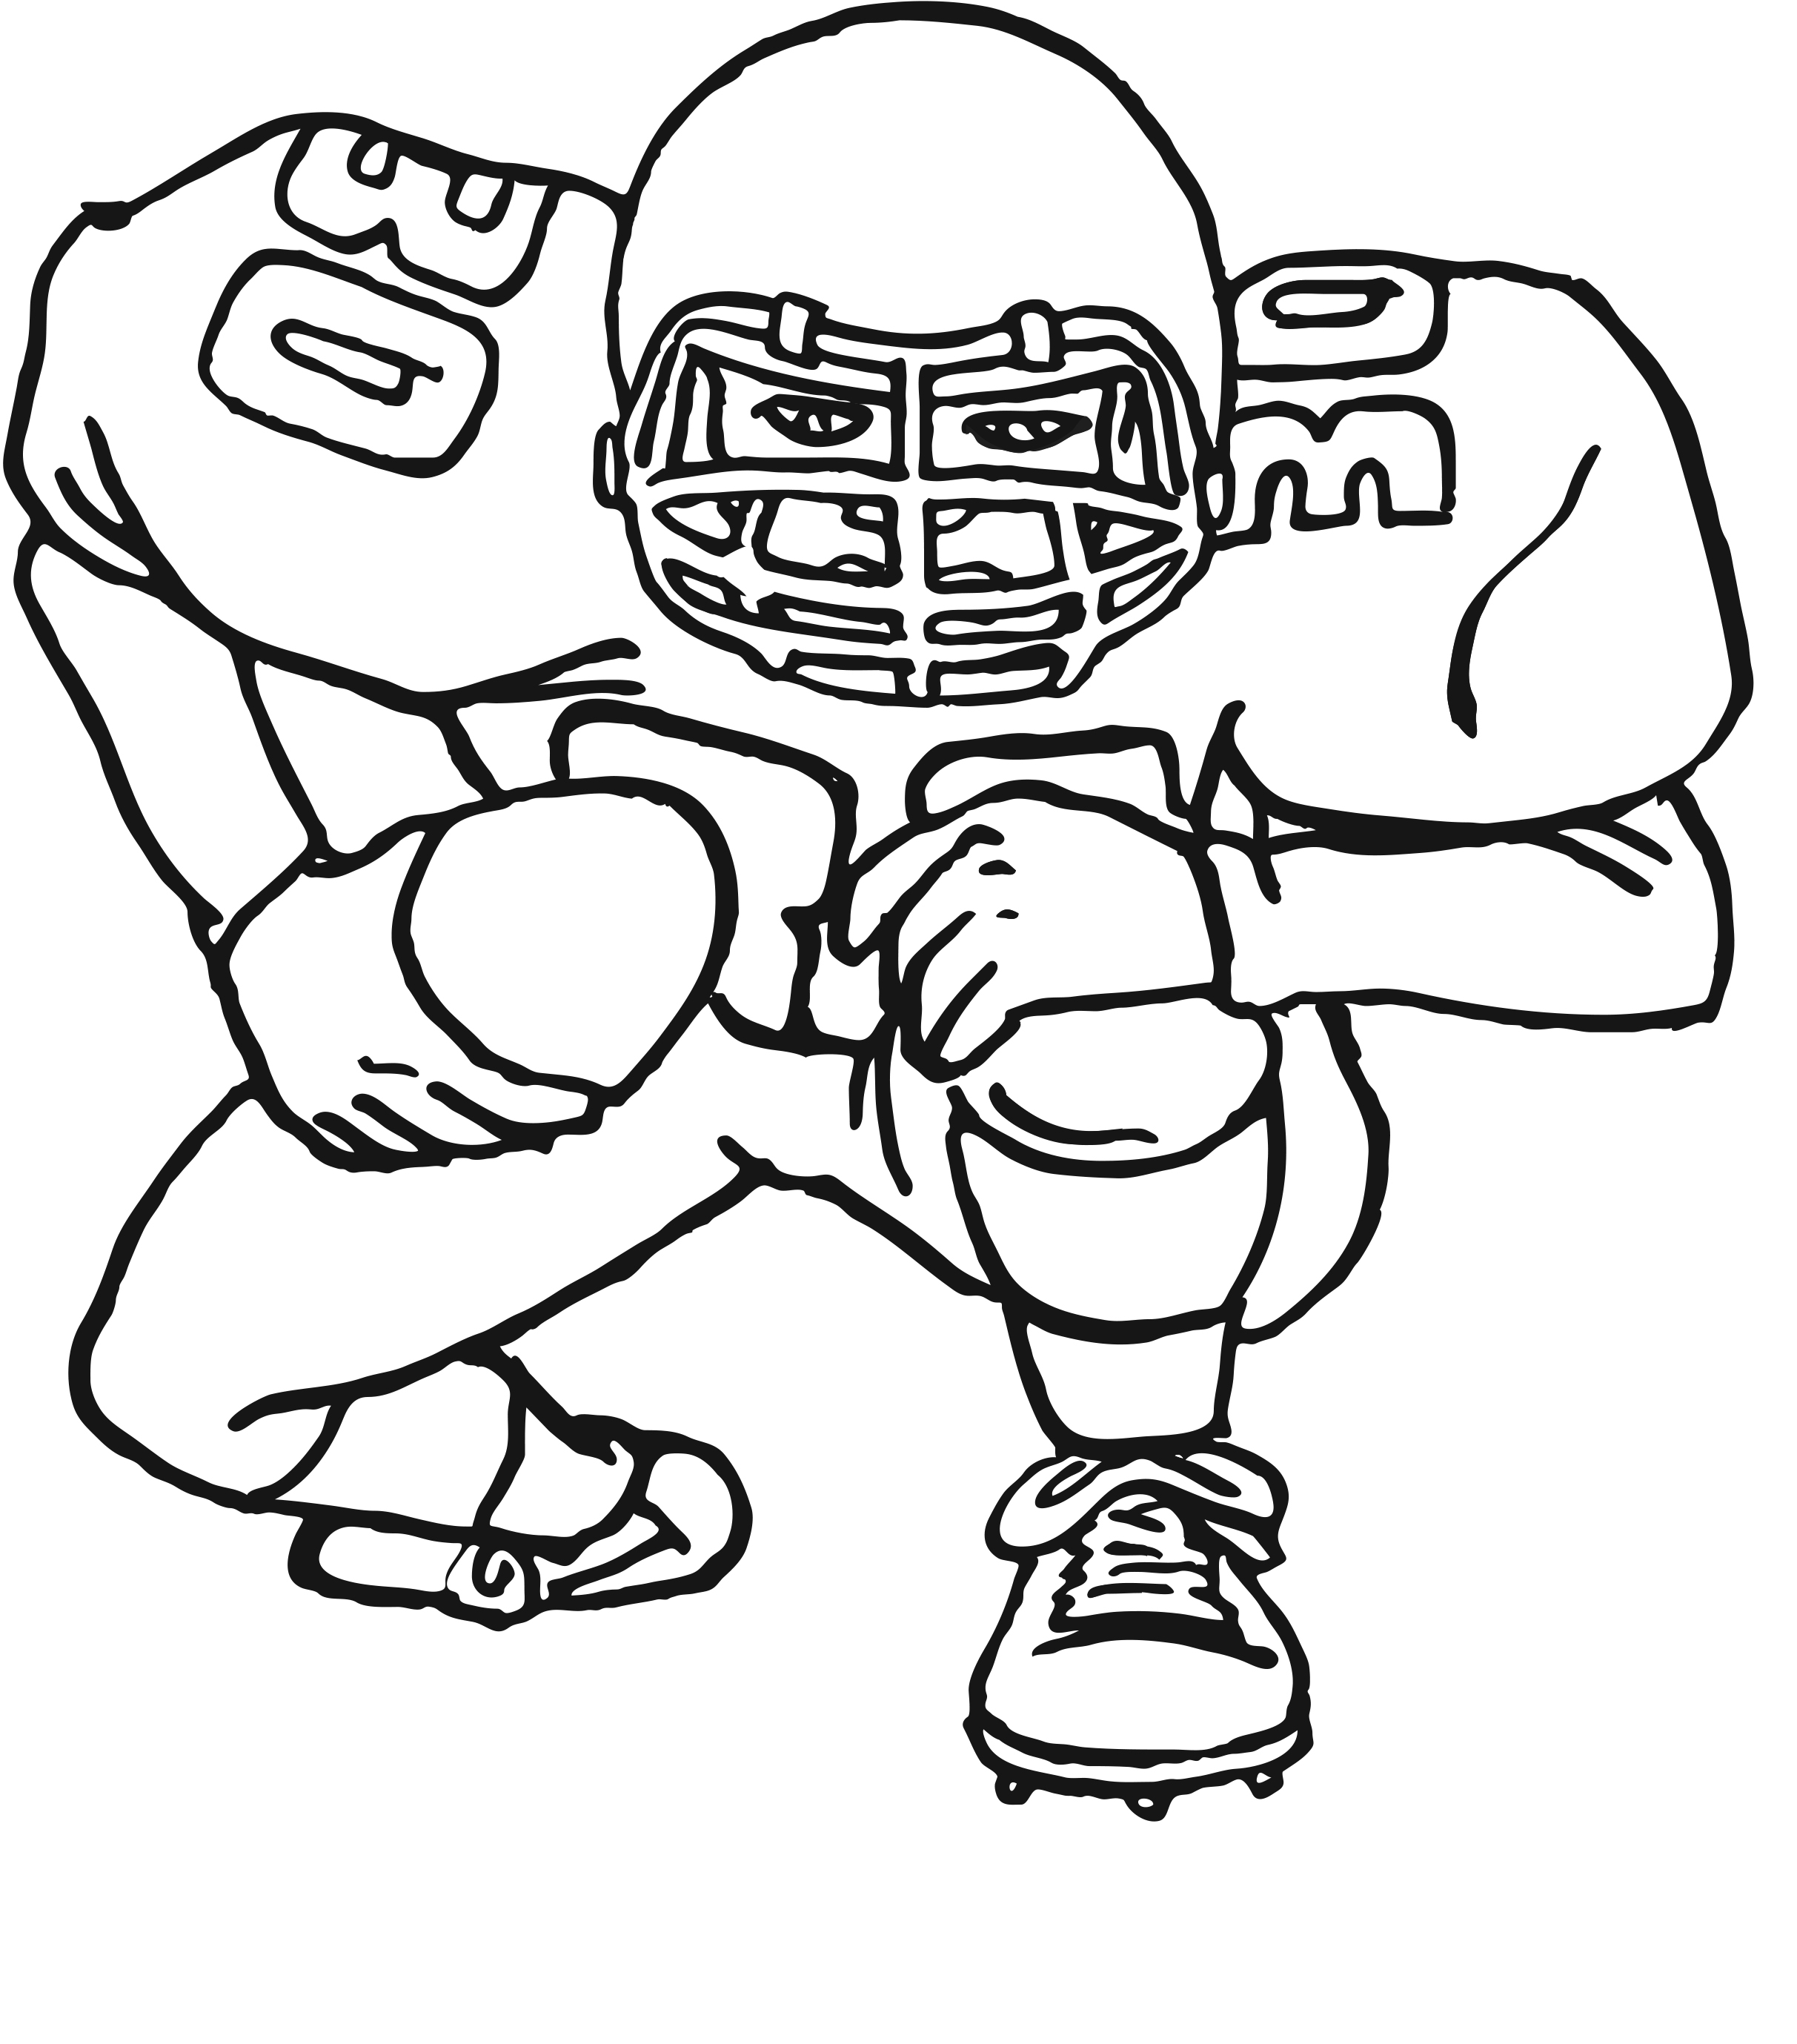 football pictures to colour in free printable football coloring pages for kids cool2bkids pictures football colour to in